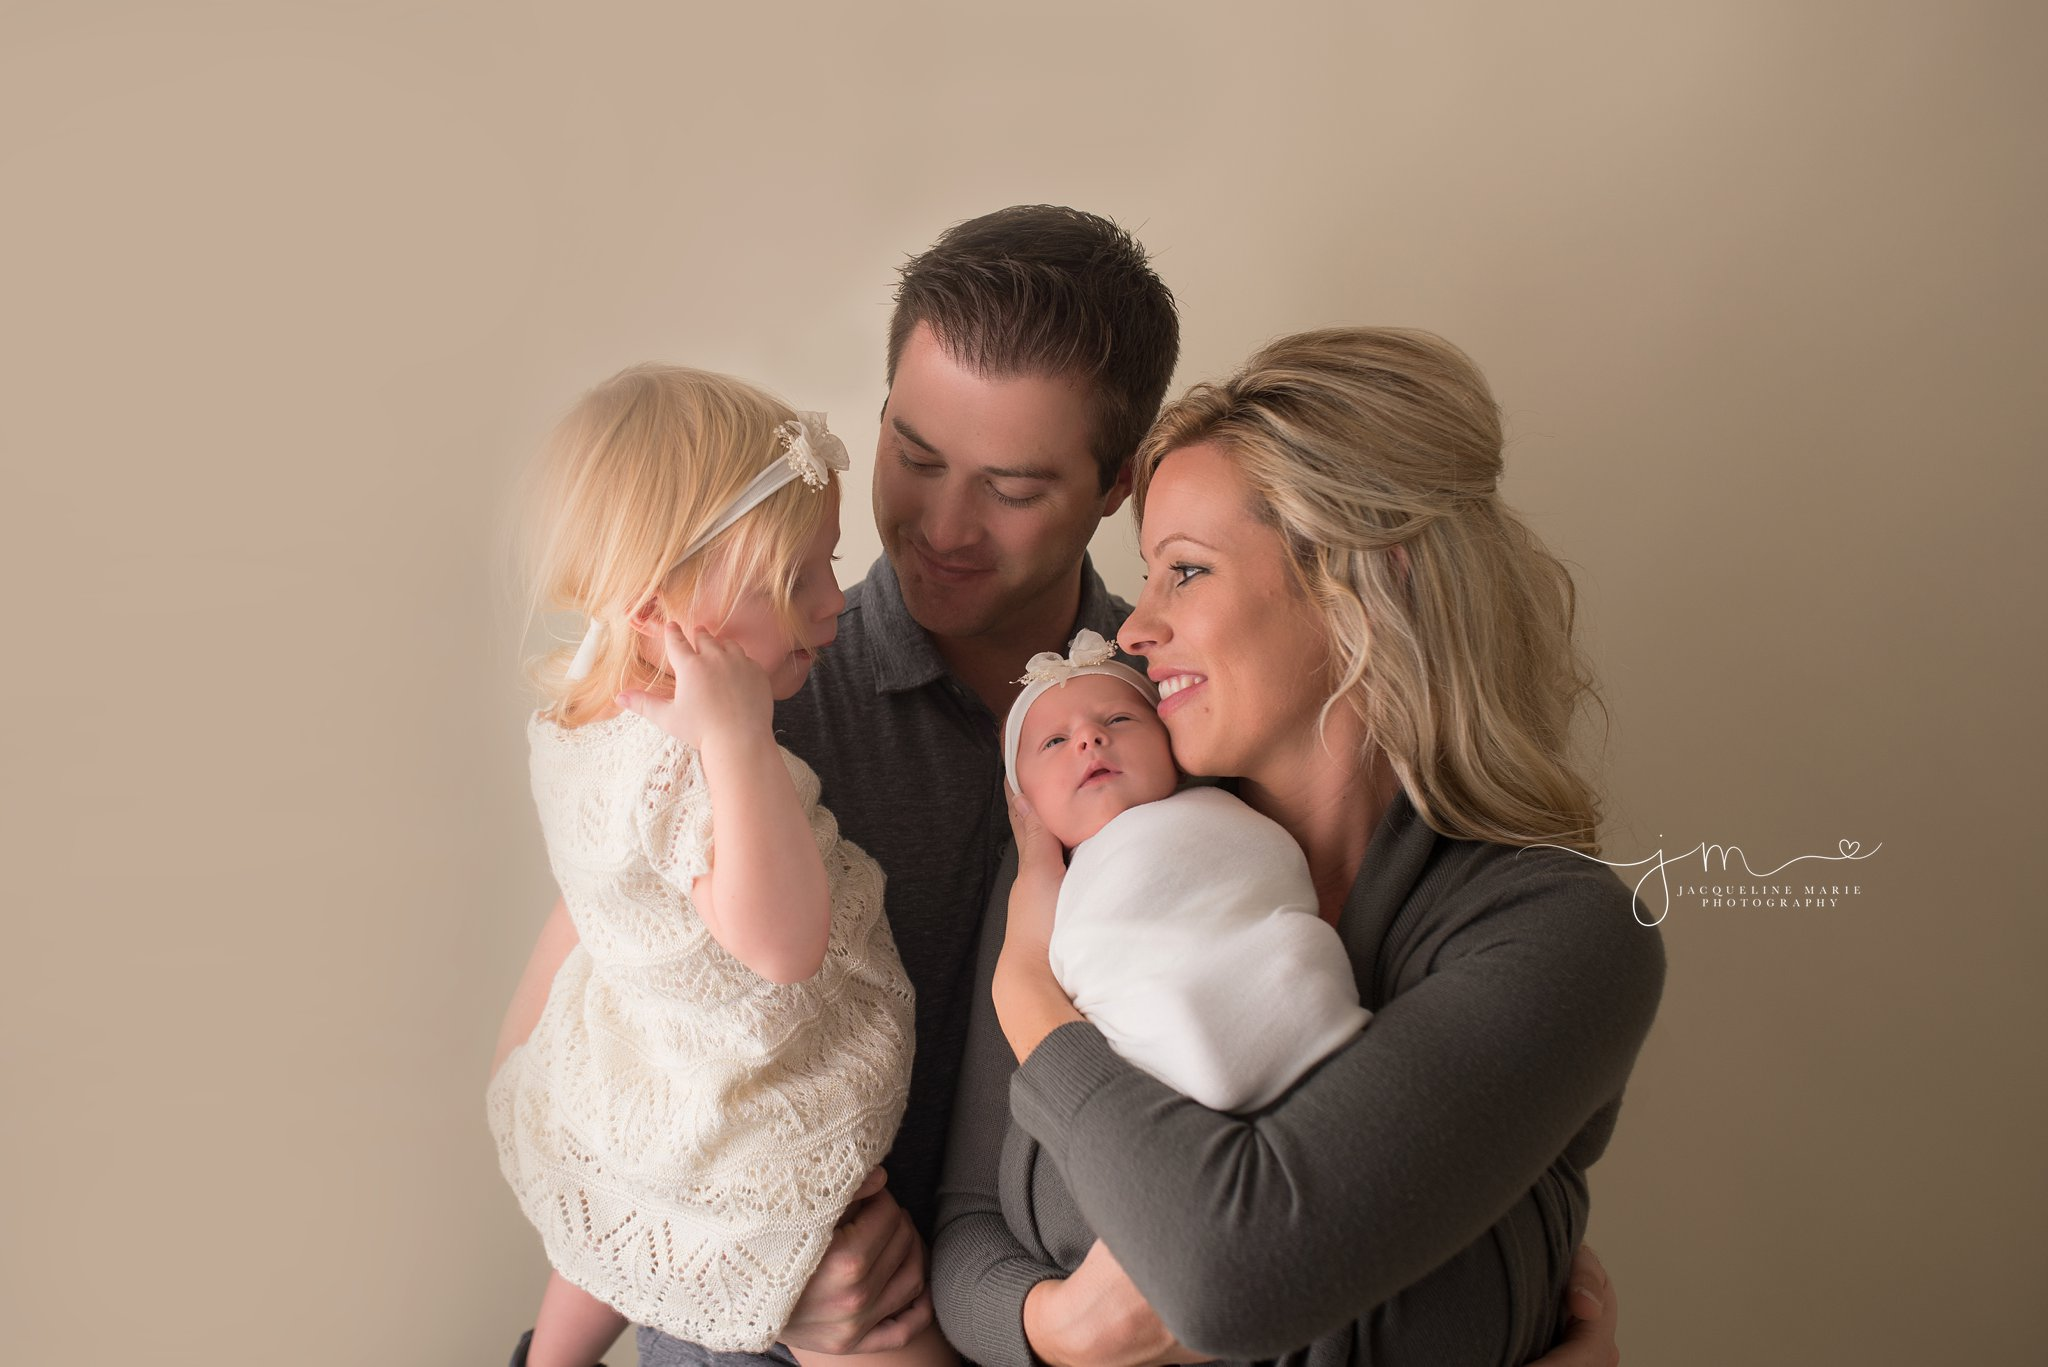 Columbus Ohio newborn photographer features family portrait with newborn baby at Jacqueline Marie Photography studio